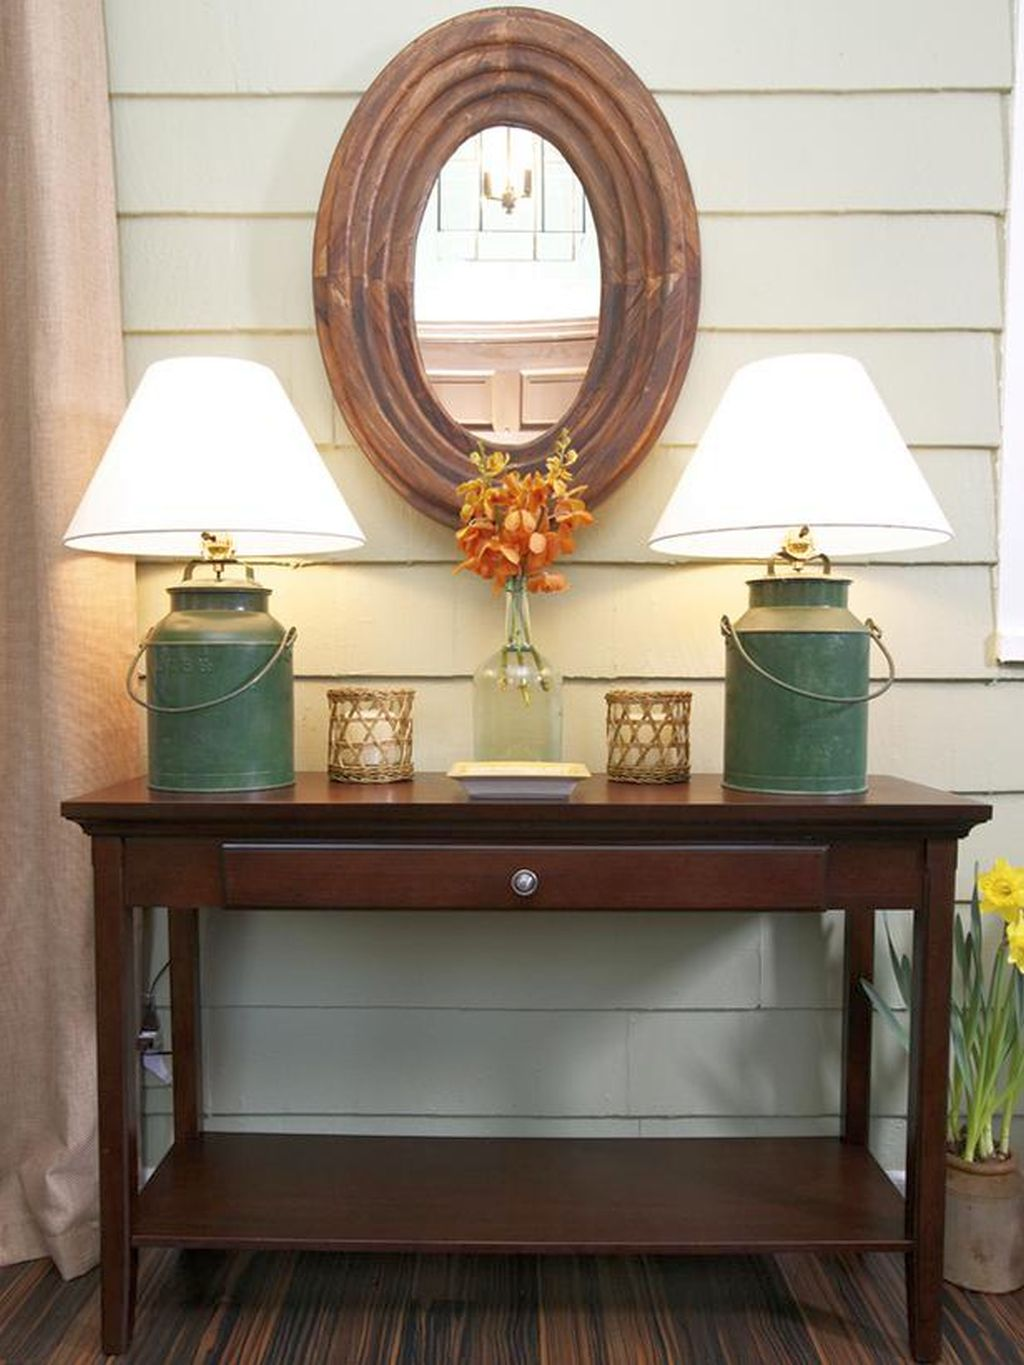 Small Foyer Table And Mirror : Rustic style small entry table ideas with oval mirror